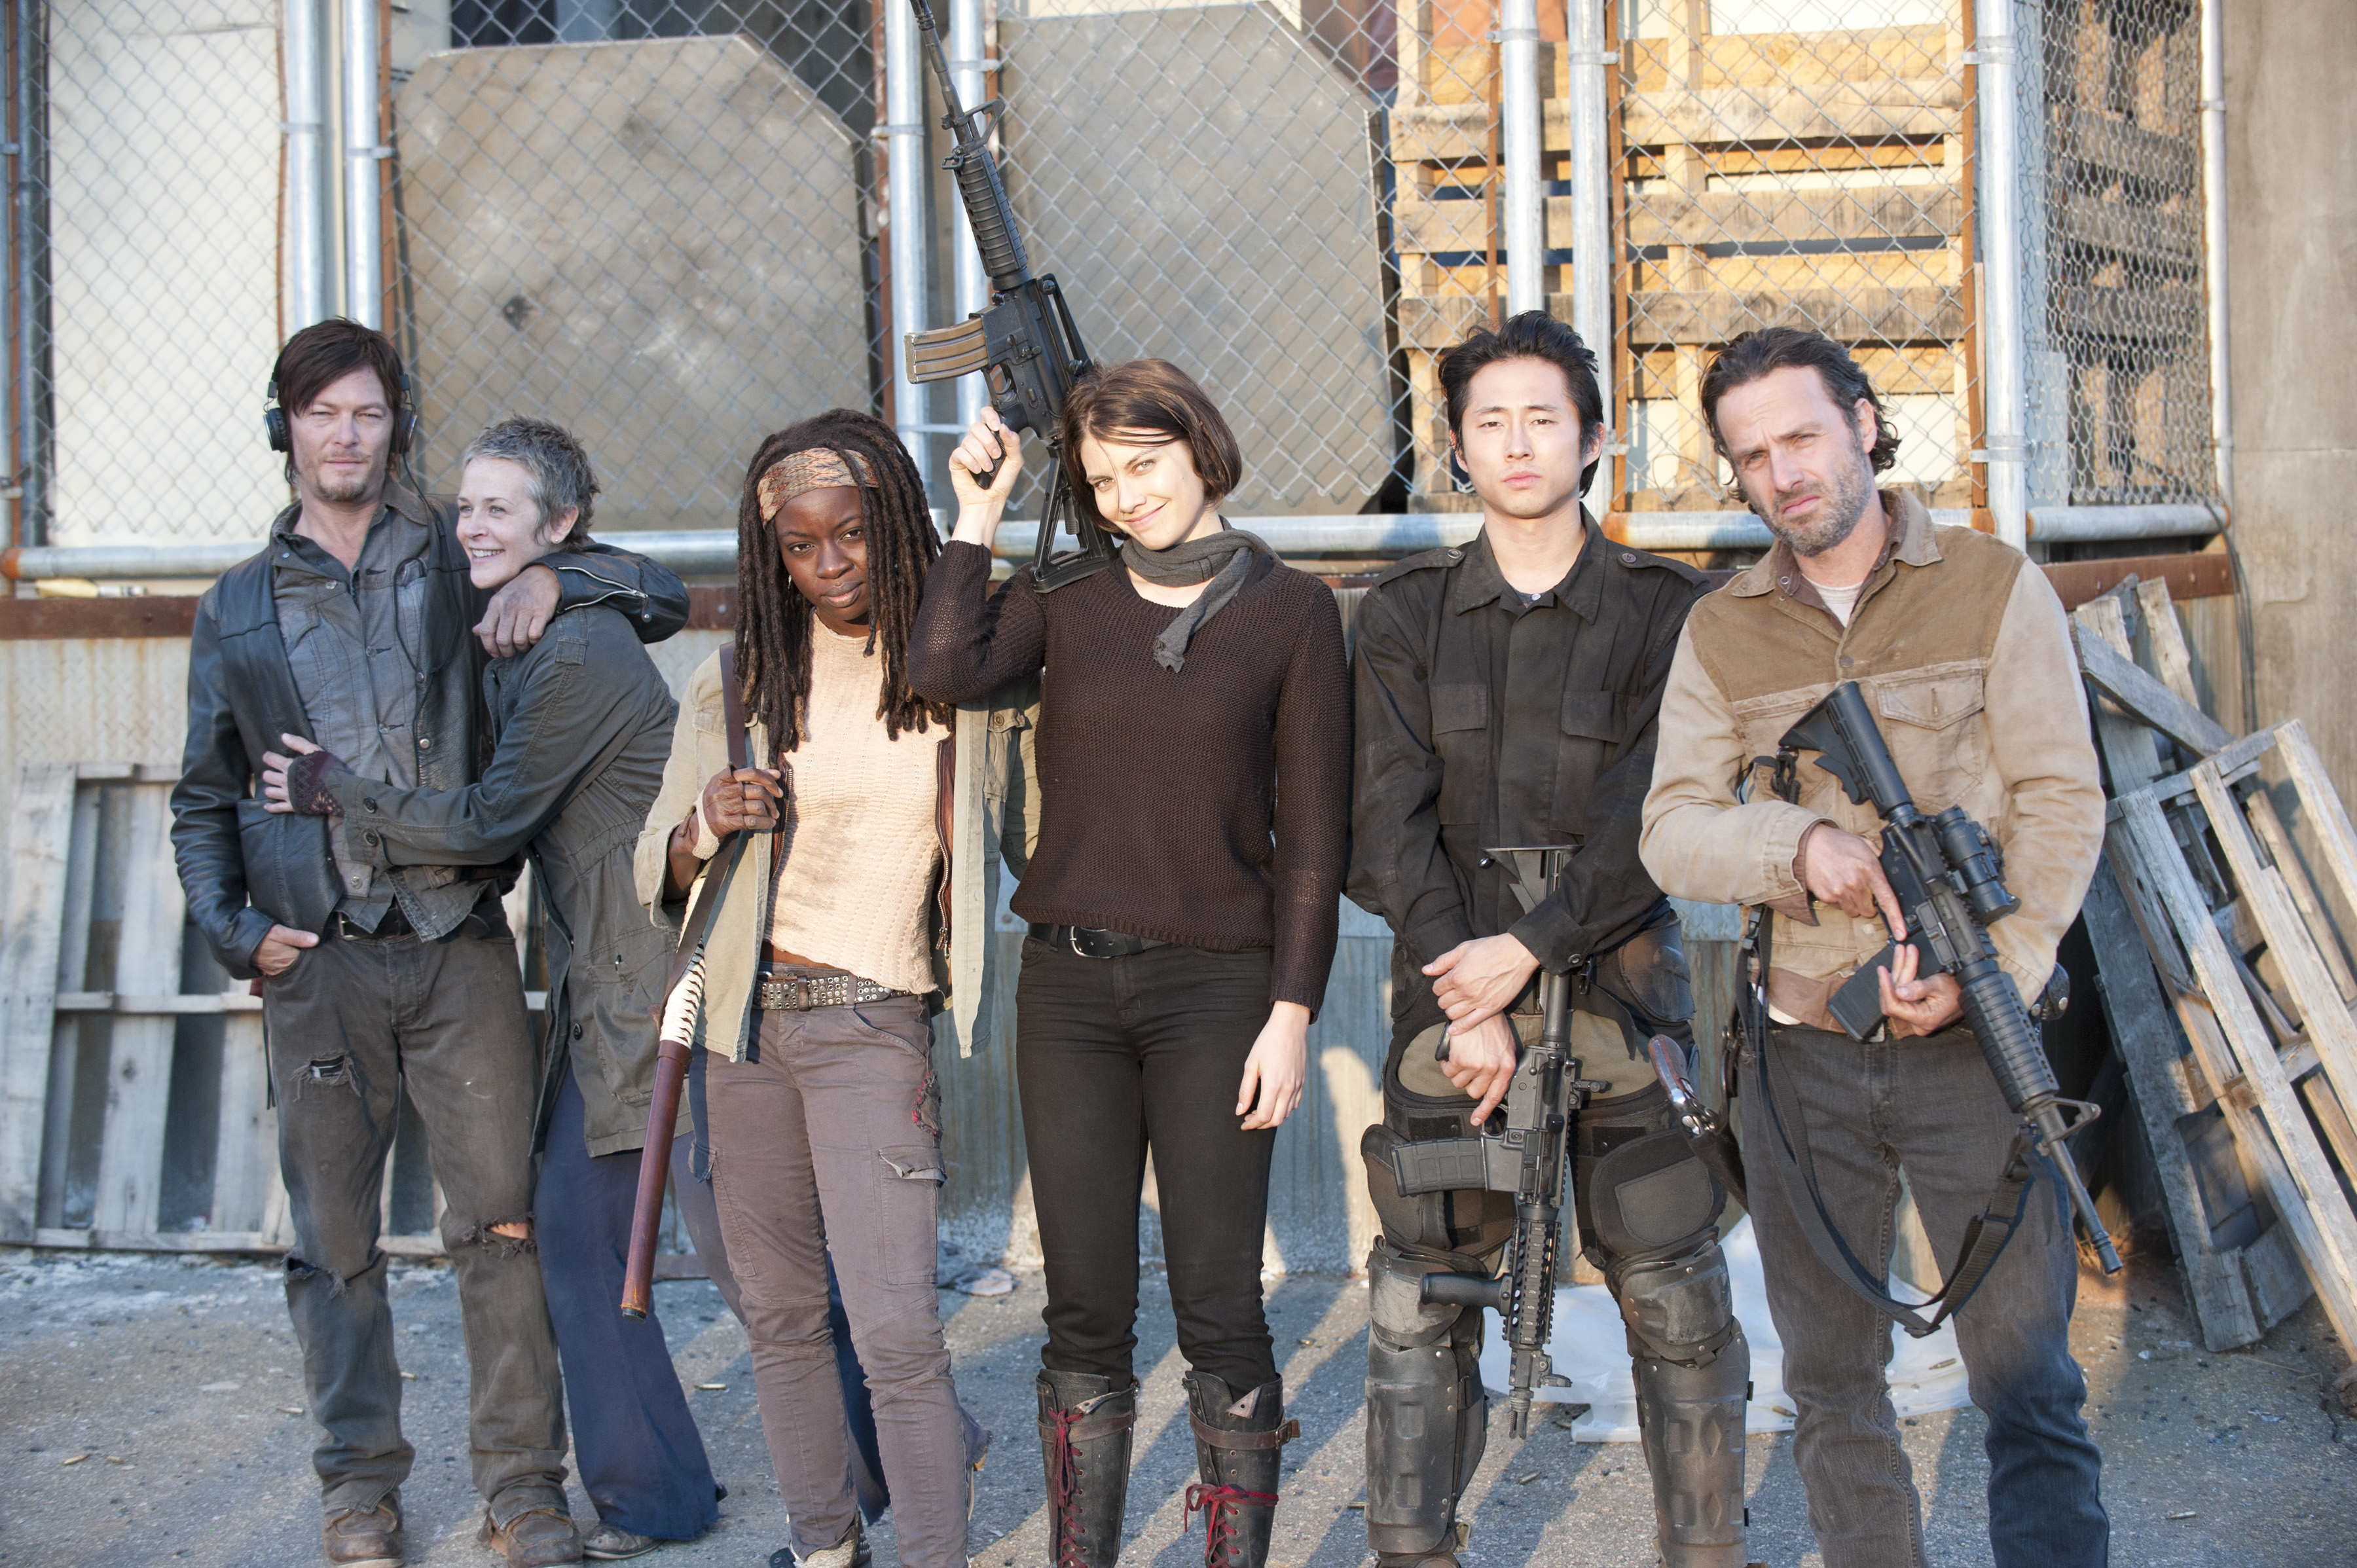 TWD 3x16 - Welcome to the tombs